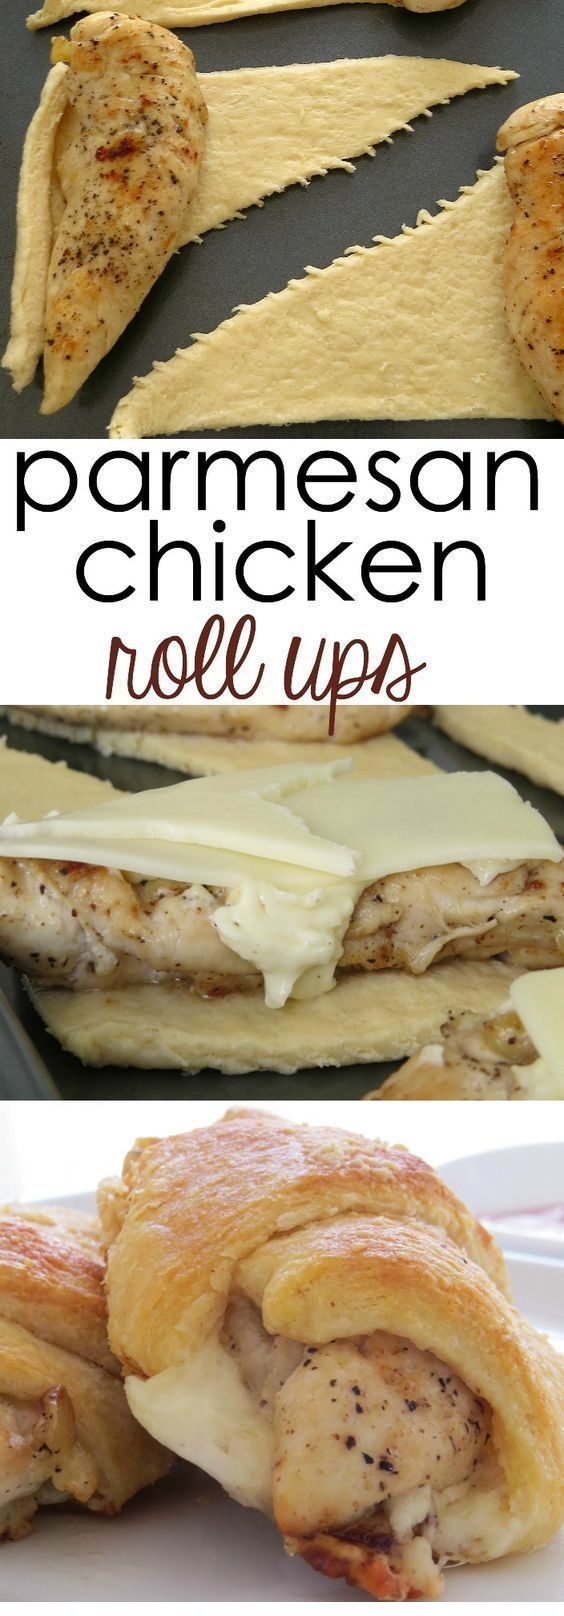 CHICKEN RECIPES | Parmesan Chicken Roll Ups